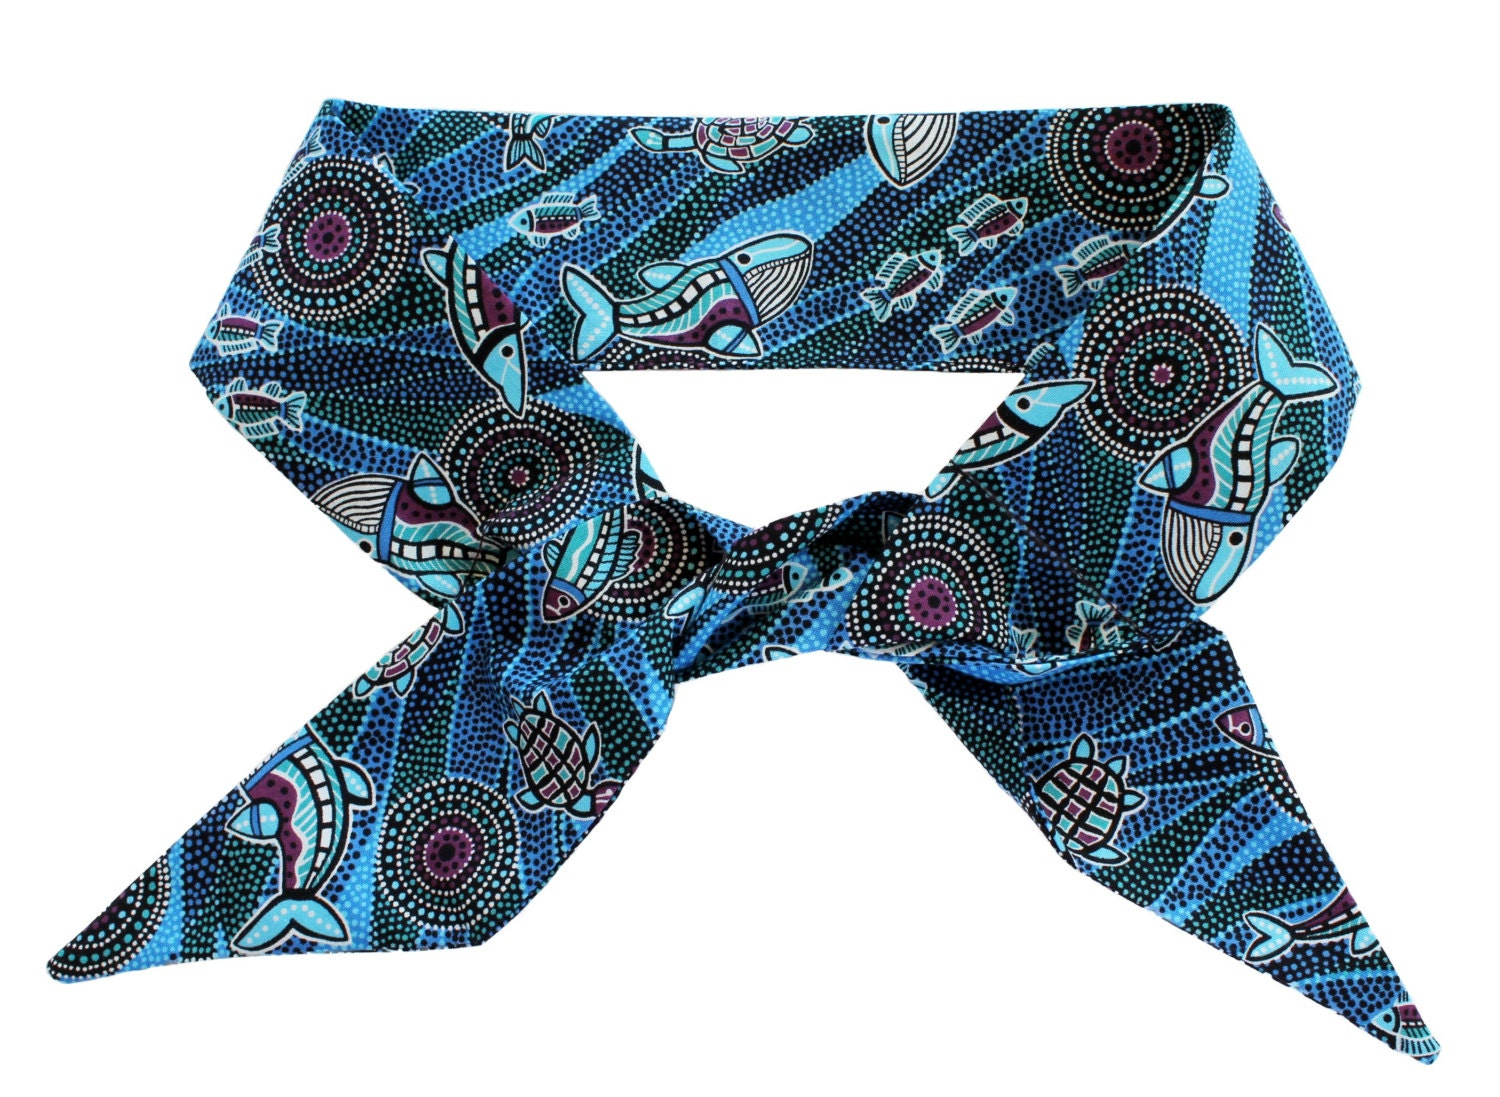 Cooling Neck Scarf : Aussie neck cooling scarf bandana aboriginal